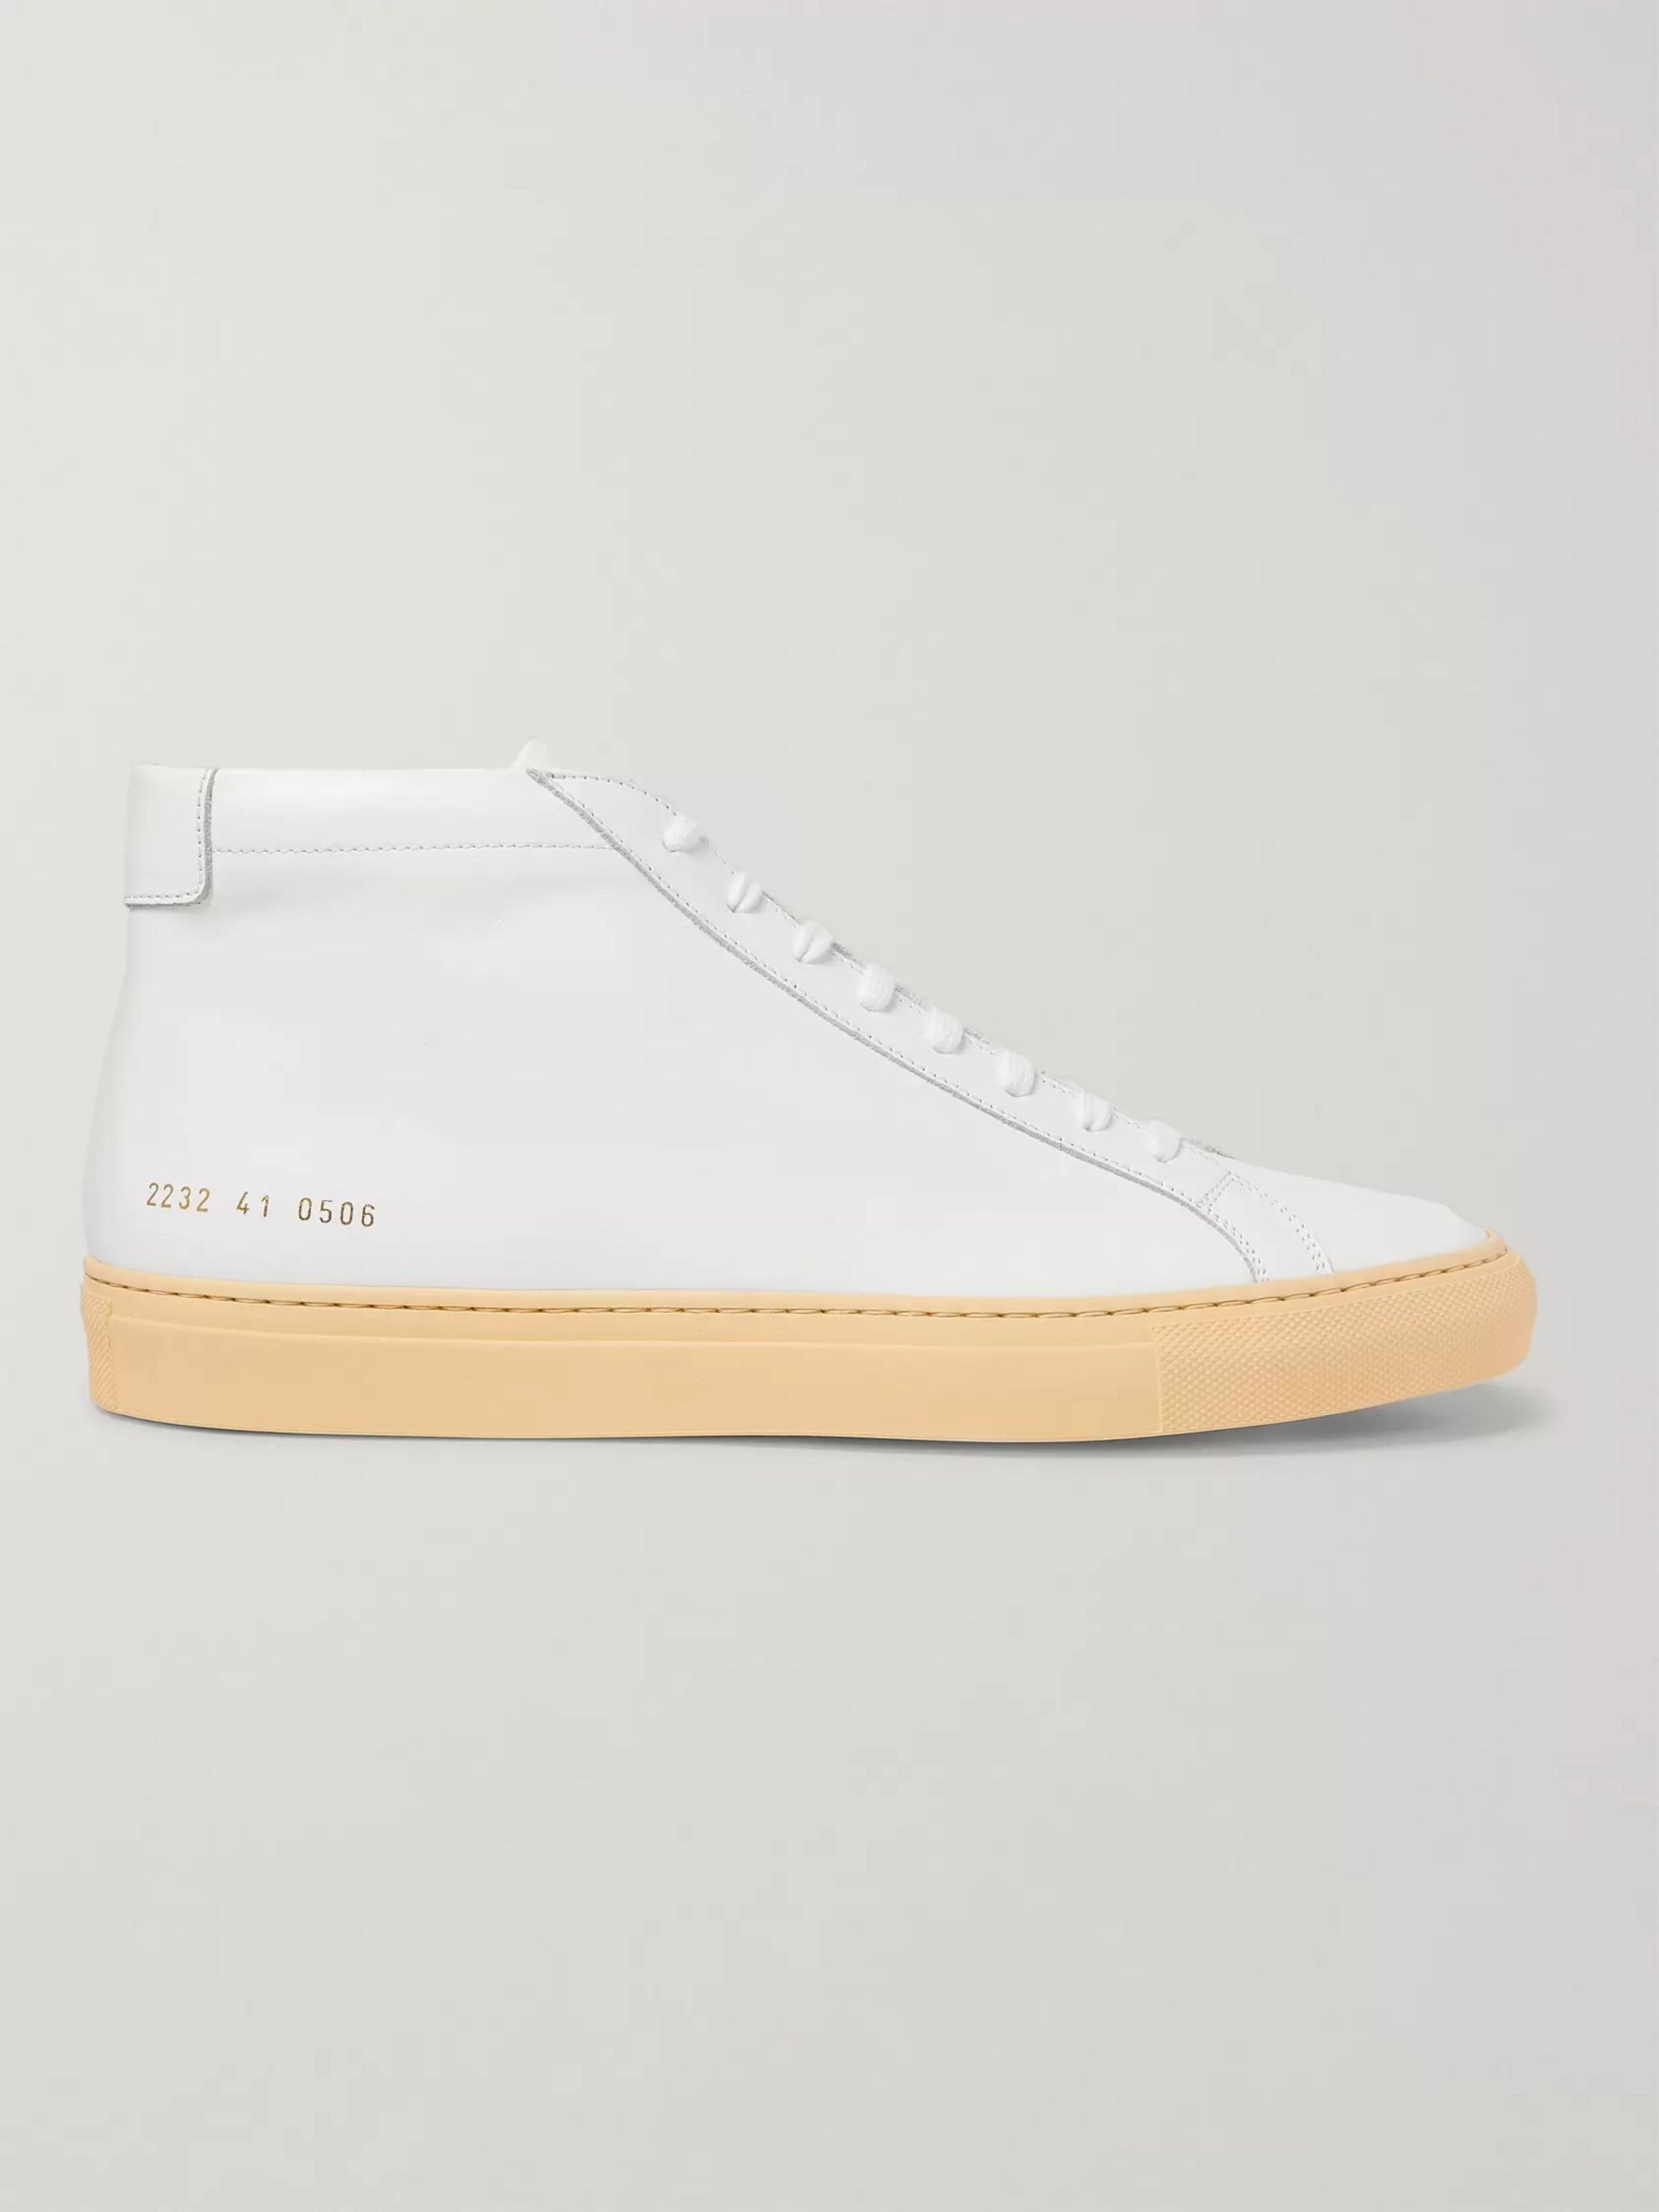 Common Projects Achilles Vintage Leather High-Top Sneakers